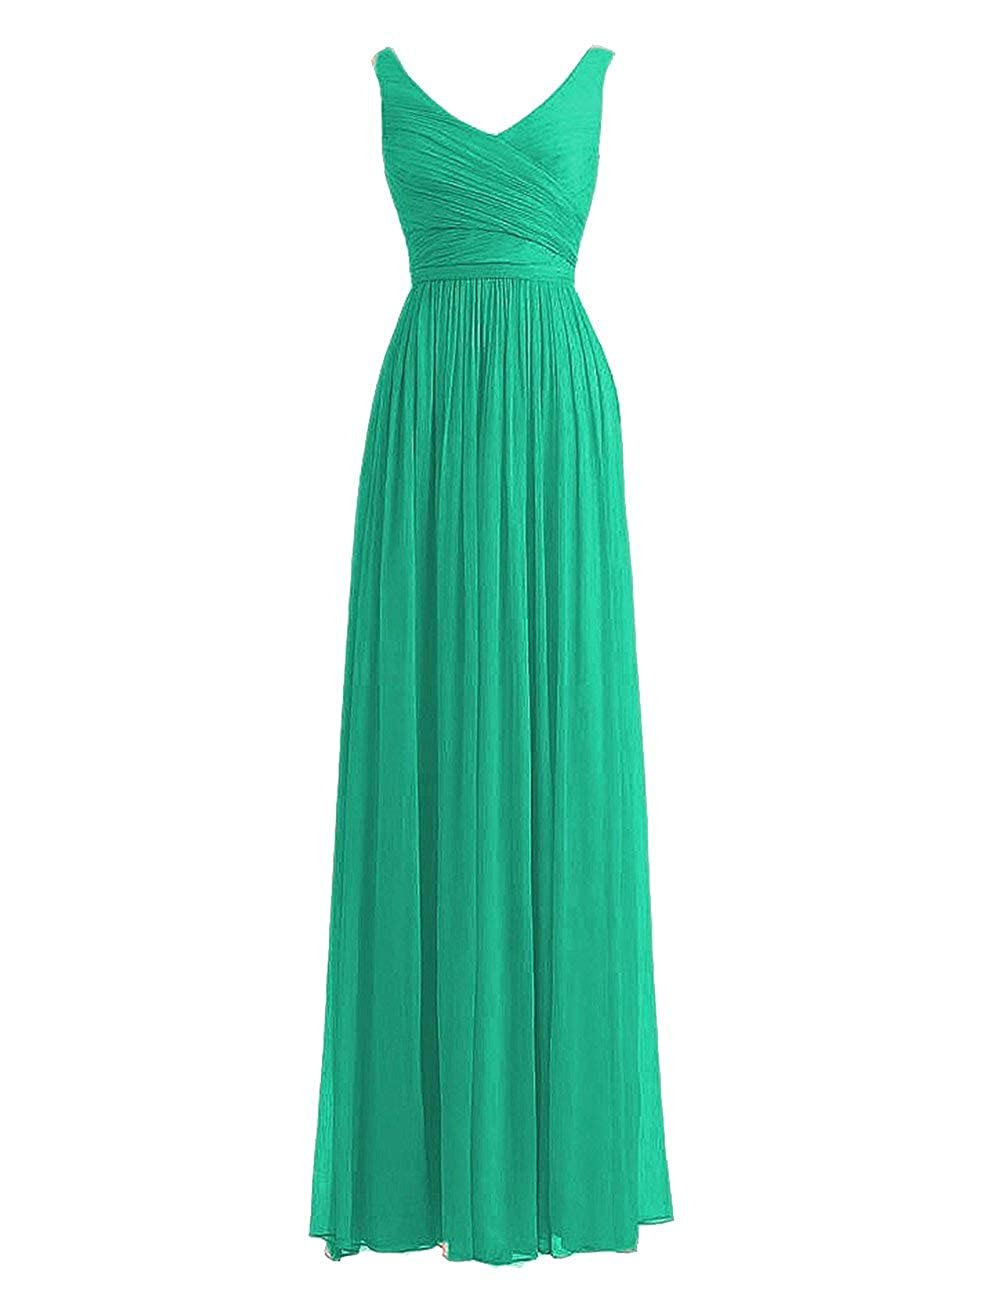 Green Fanciest Women's Double V Neck Long Bridesmaid Dresses 2018 Wedding Party Dress